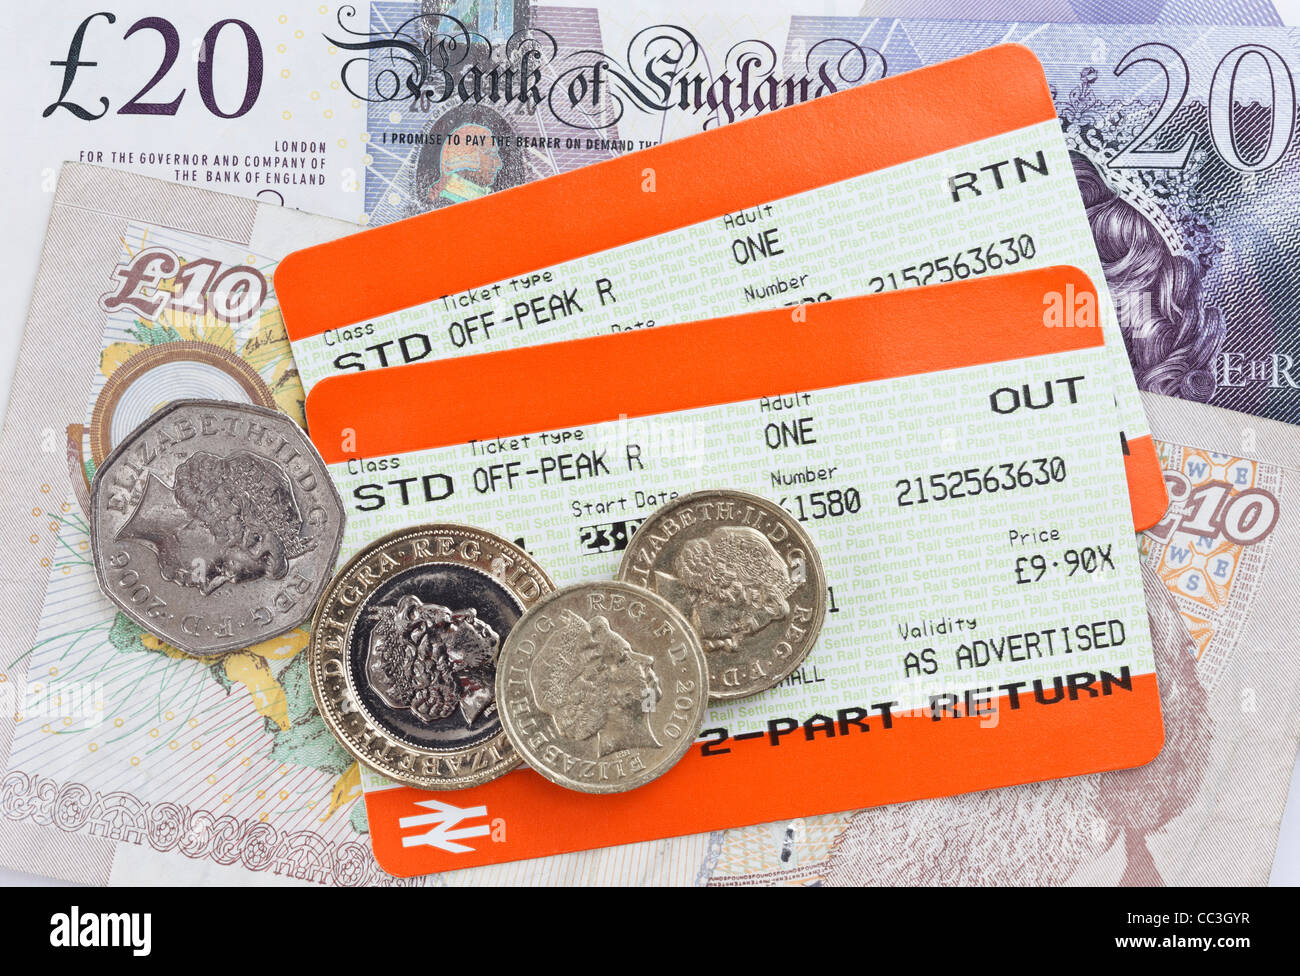 Two UK train tickets for Standard off-peak value travel out and return with sterling money banknotes and coins. - Stock Image